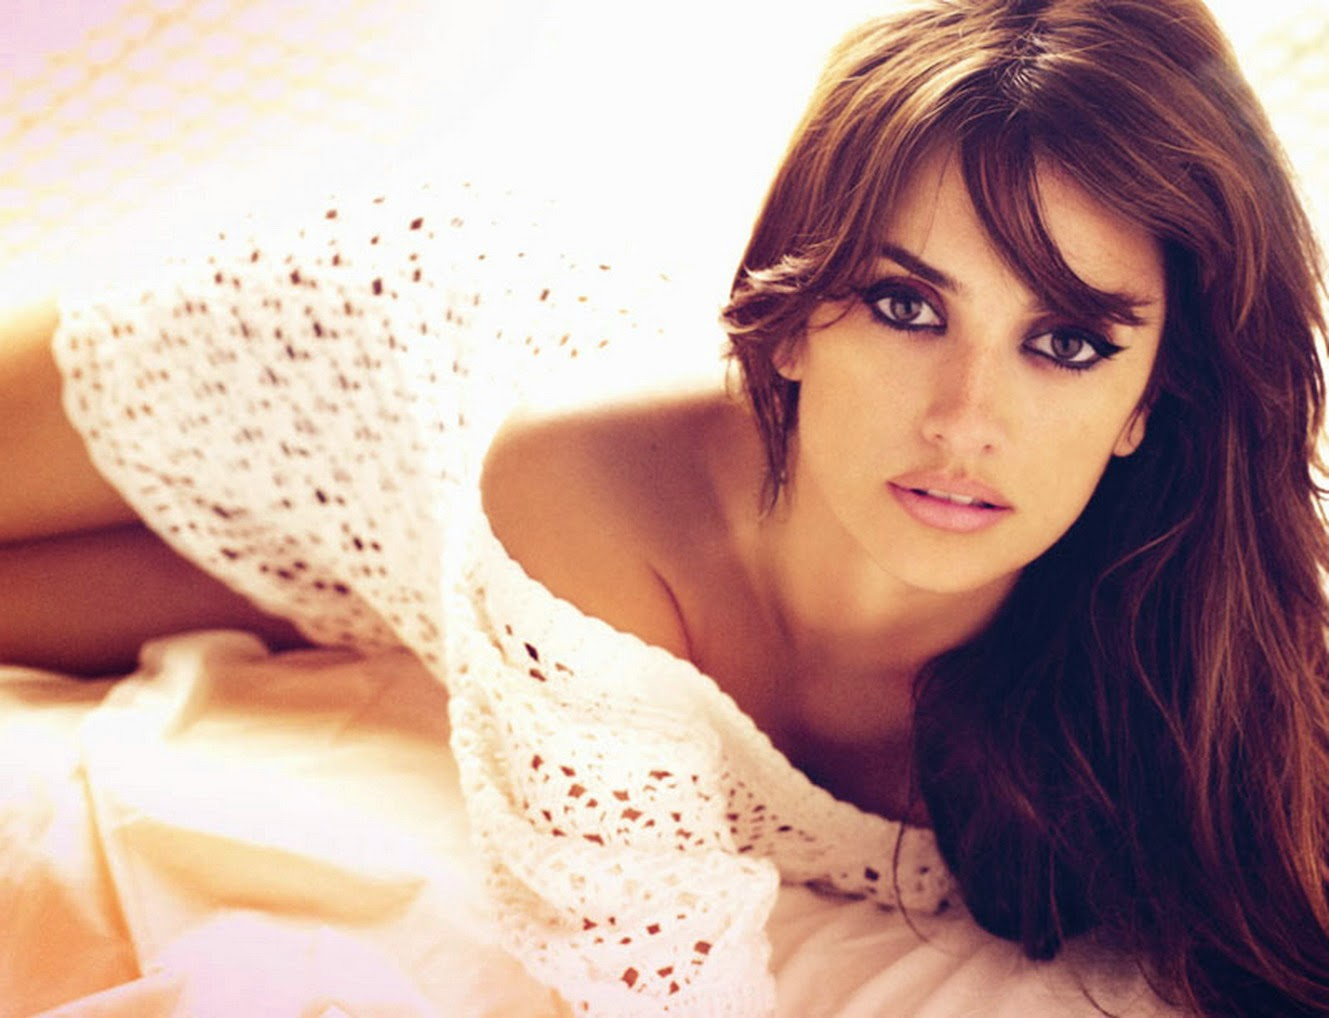 Penelope cruz desnuda follando photo 24